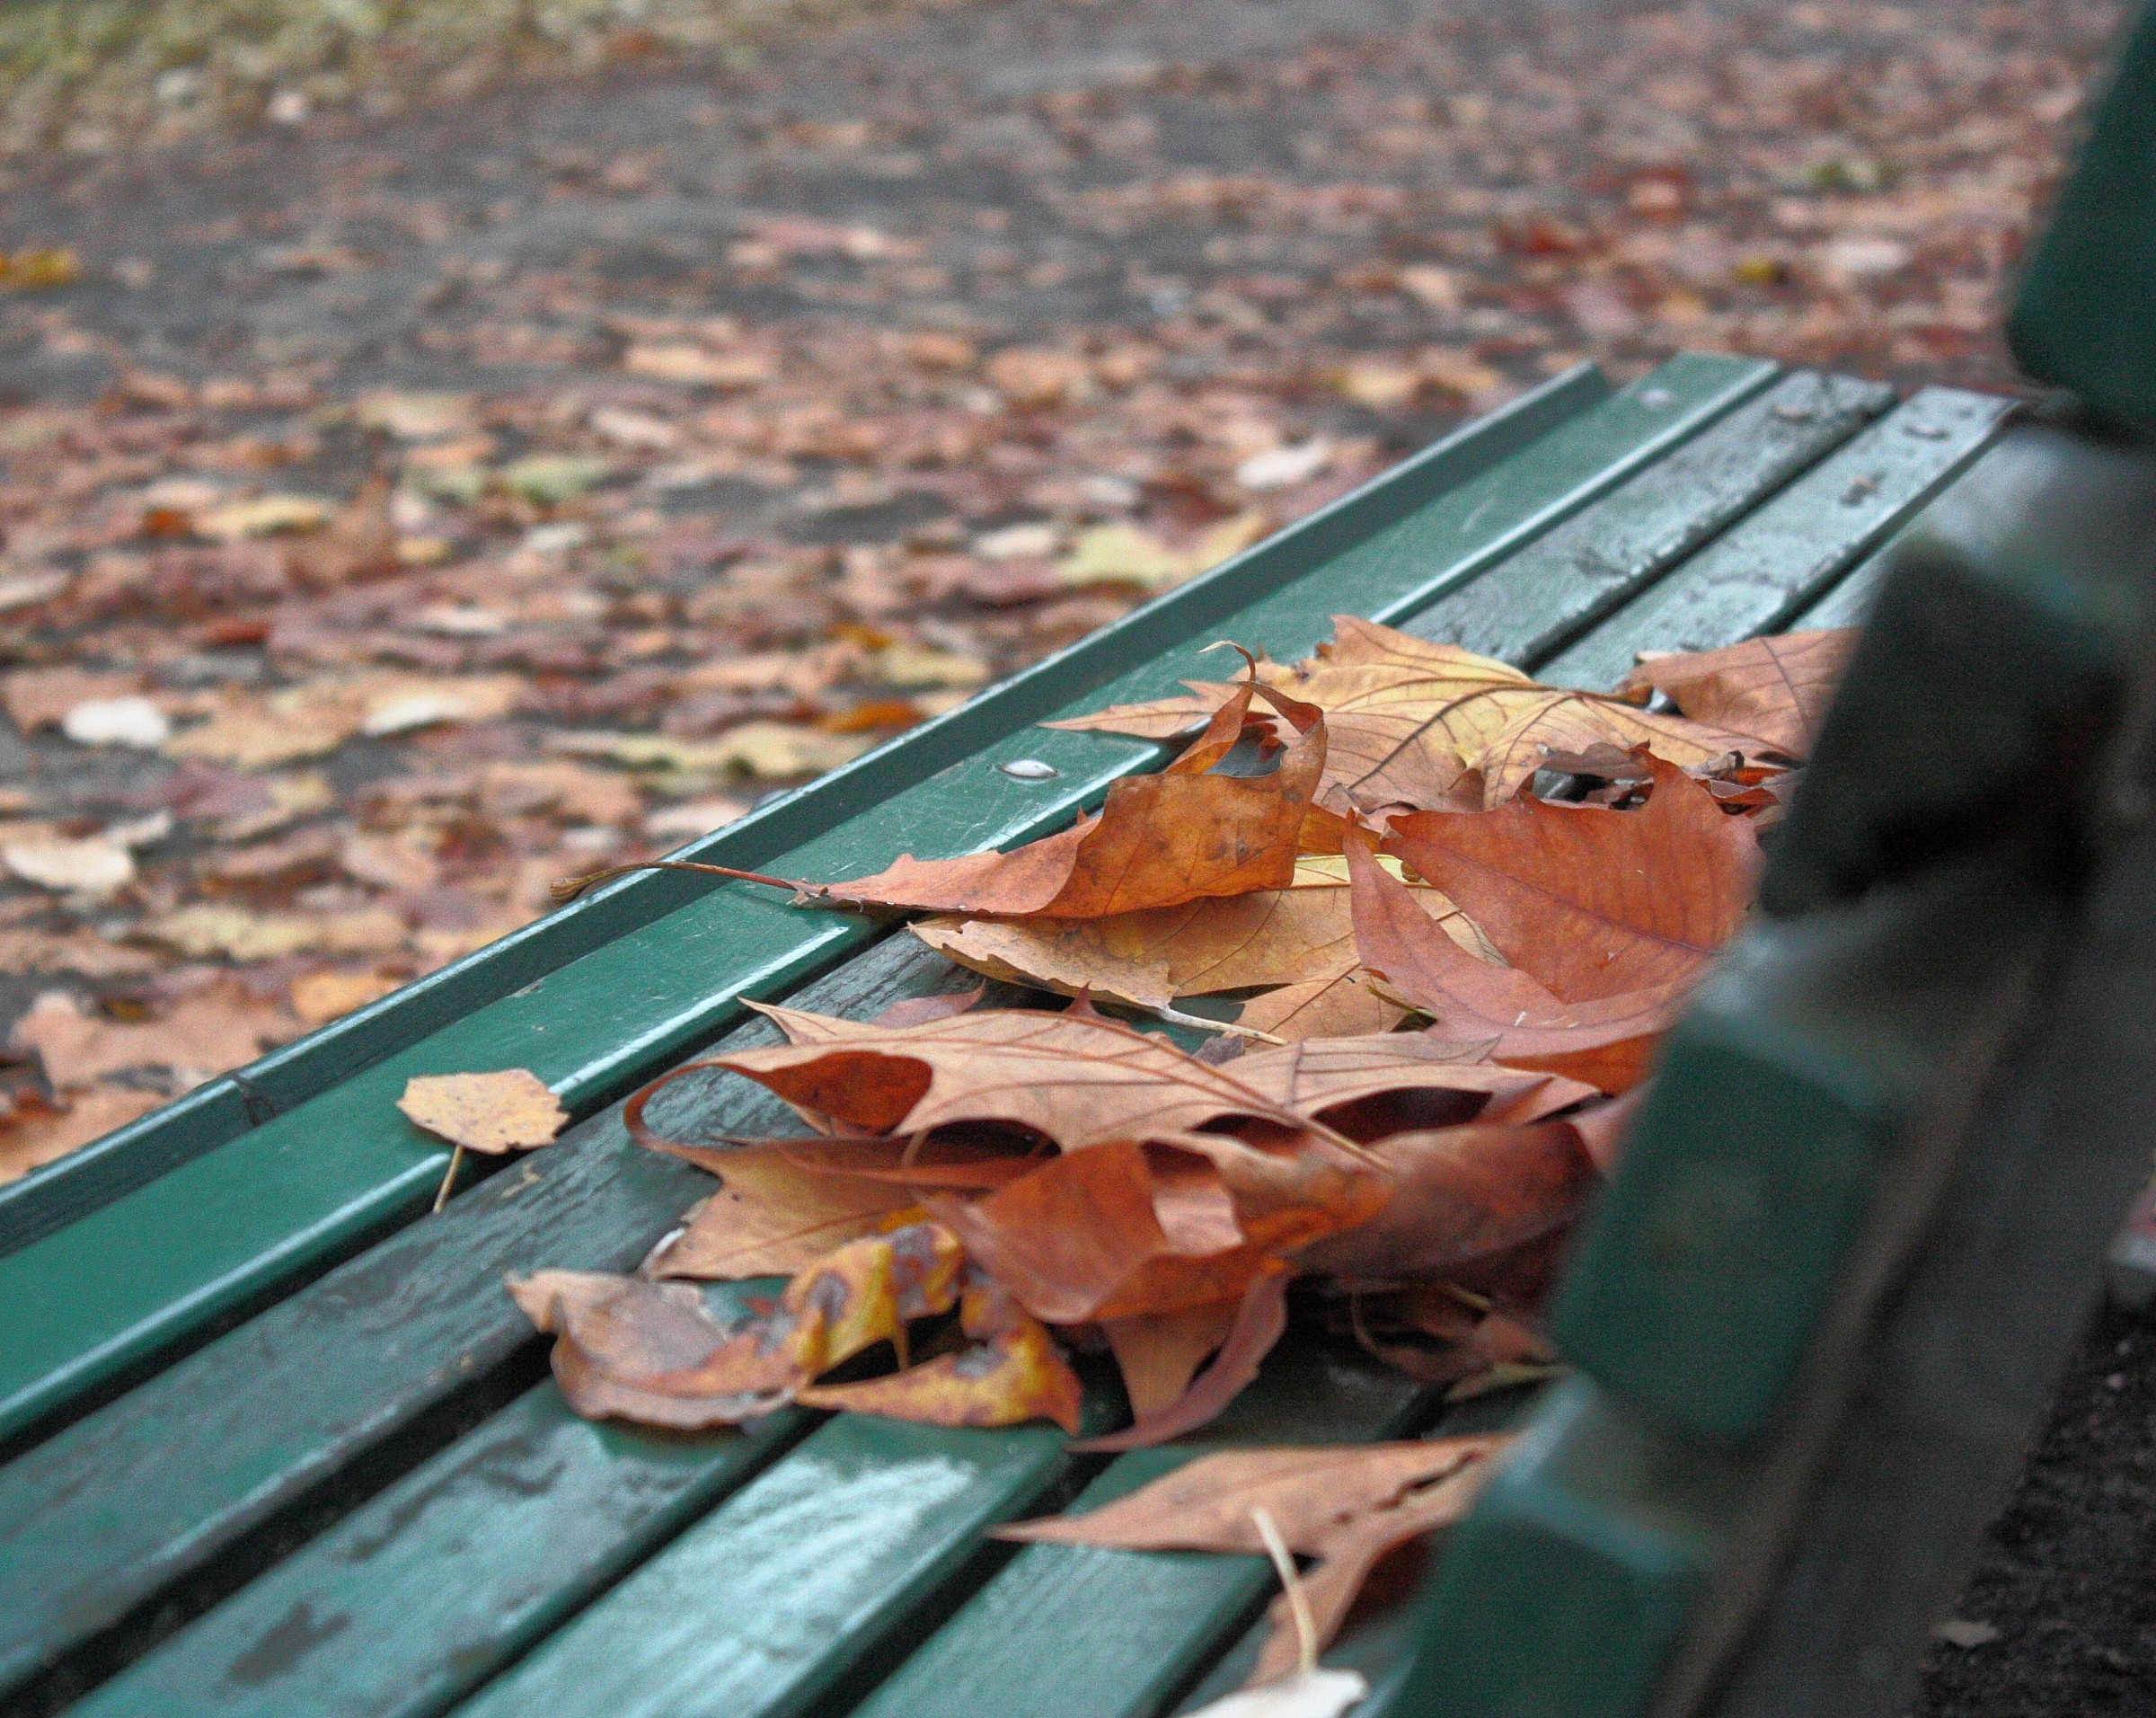 Yesterday I saw the fall .... sitting on a bench...